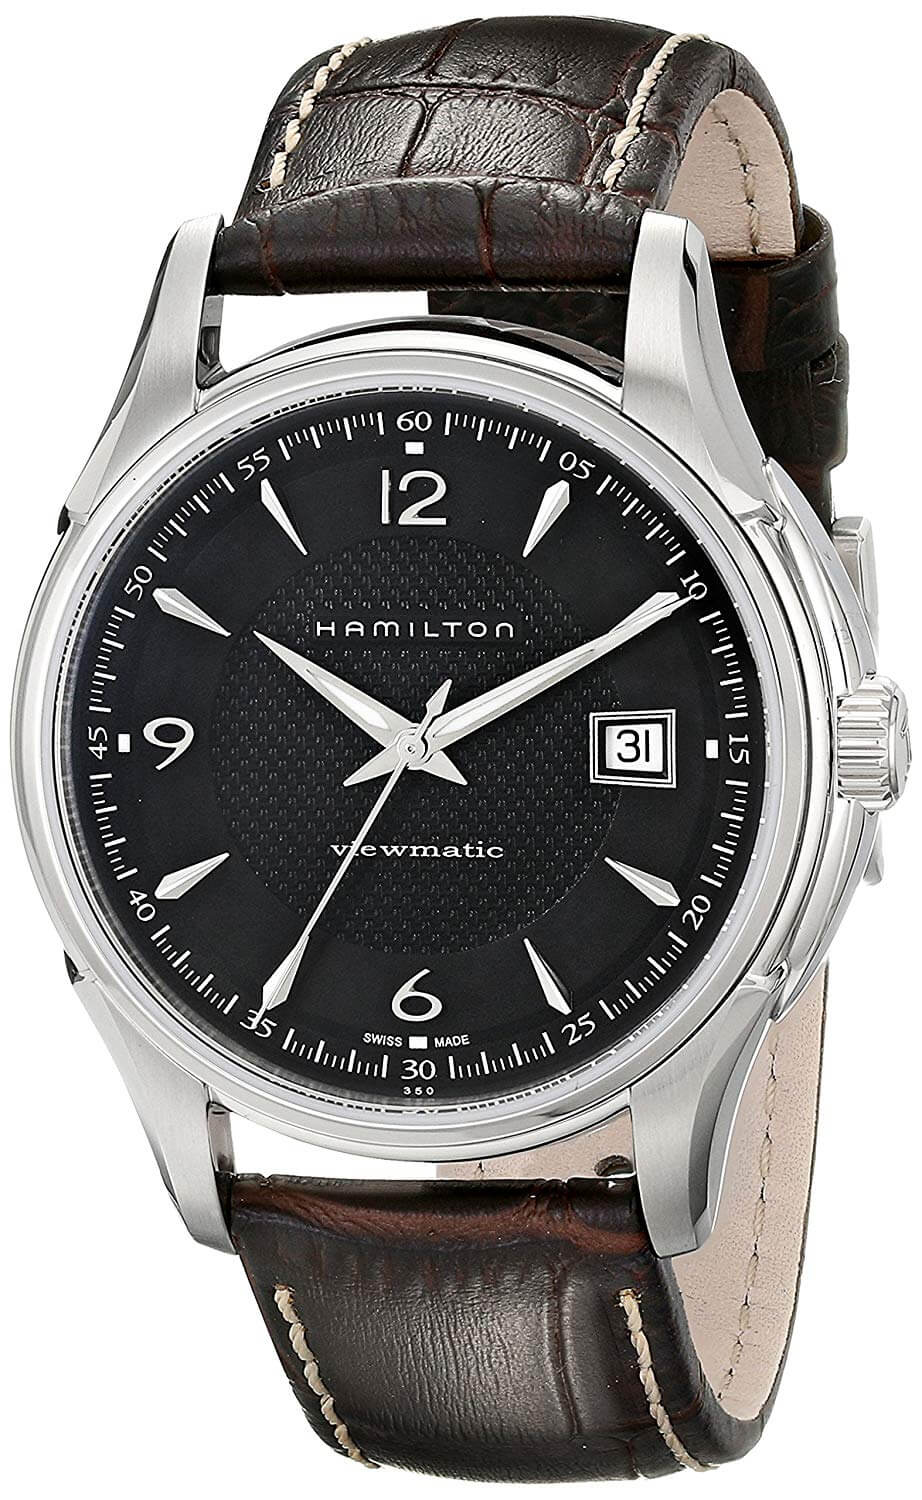 12. Hamilton Jazzmaster Viewmatic